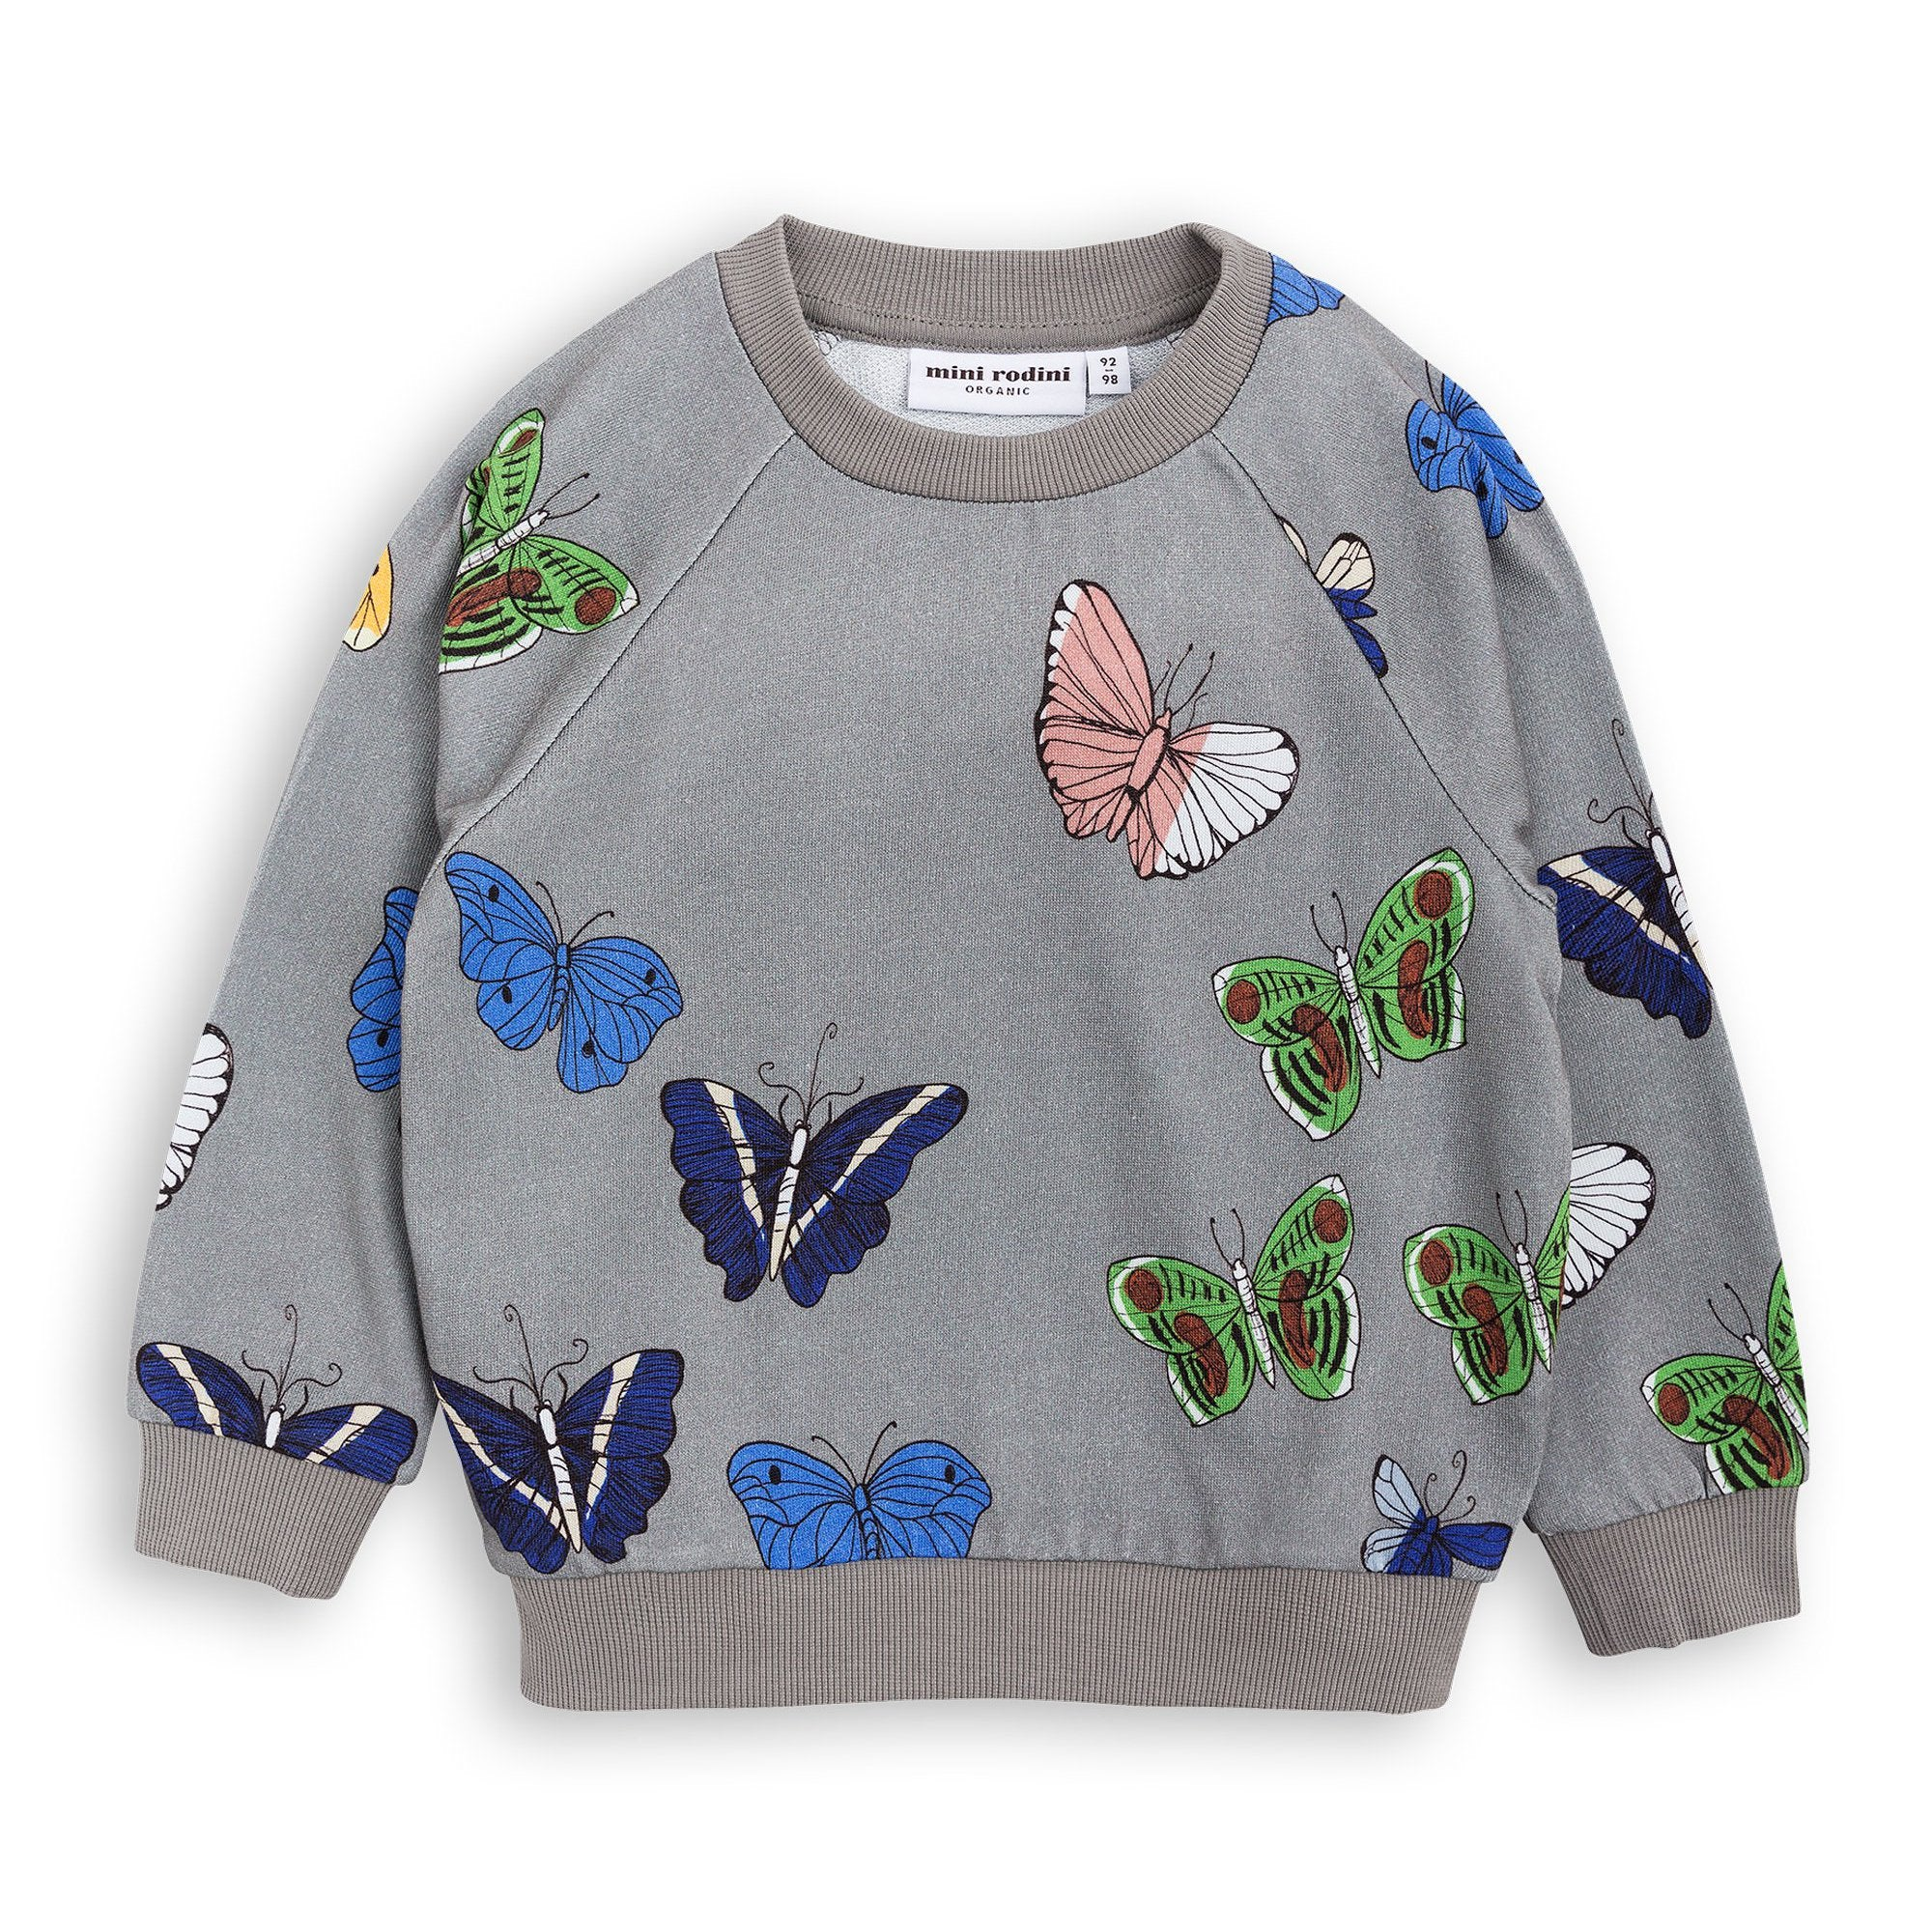 Mini Rodini - Grey Butterflies Sweatshirt